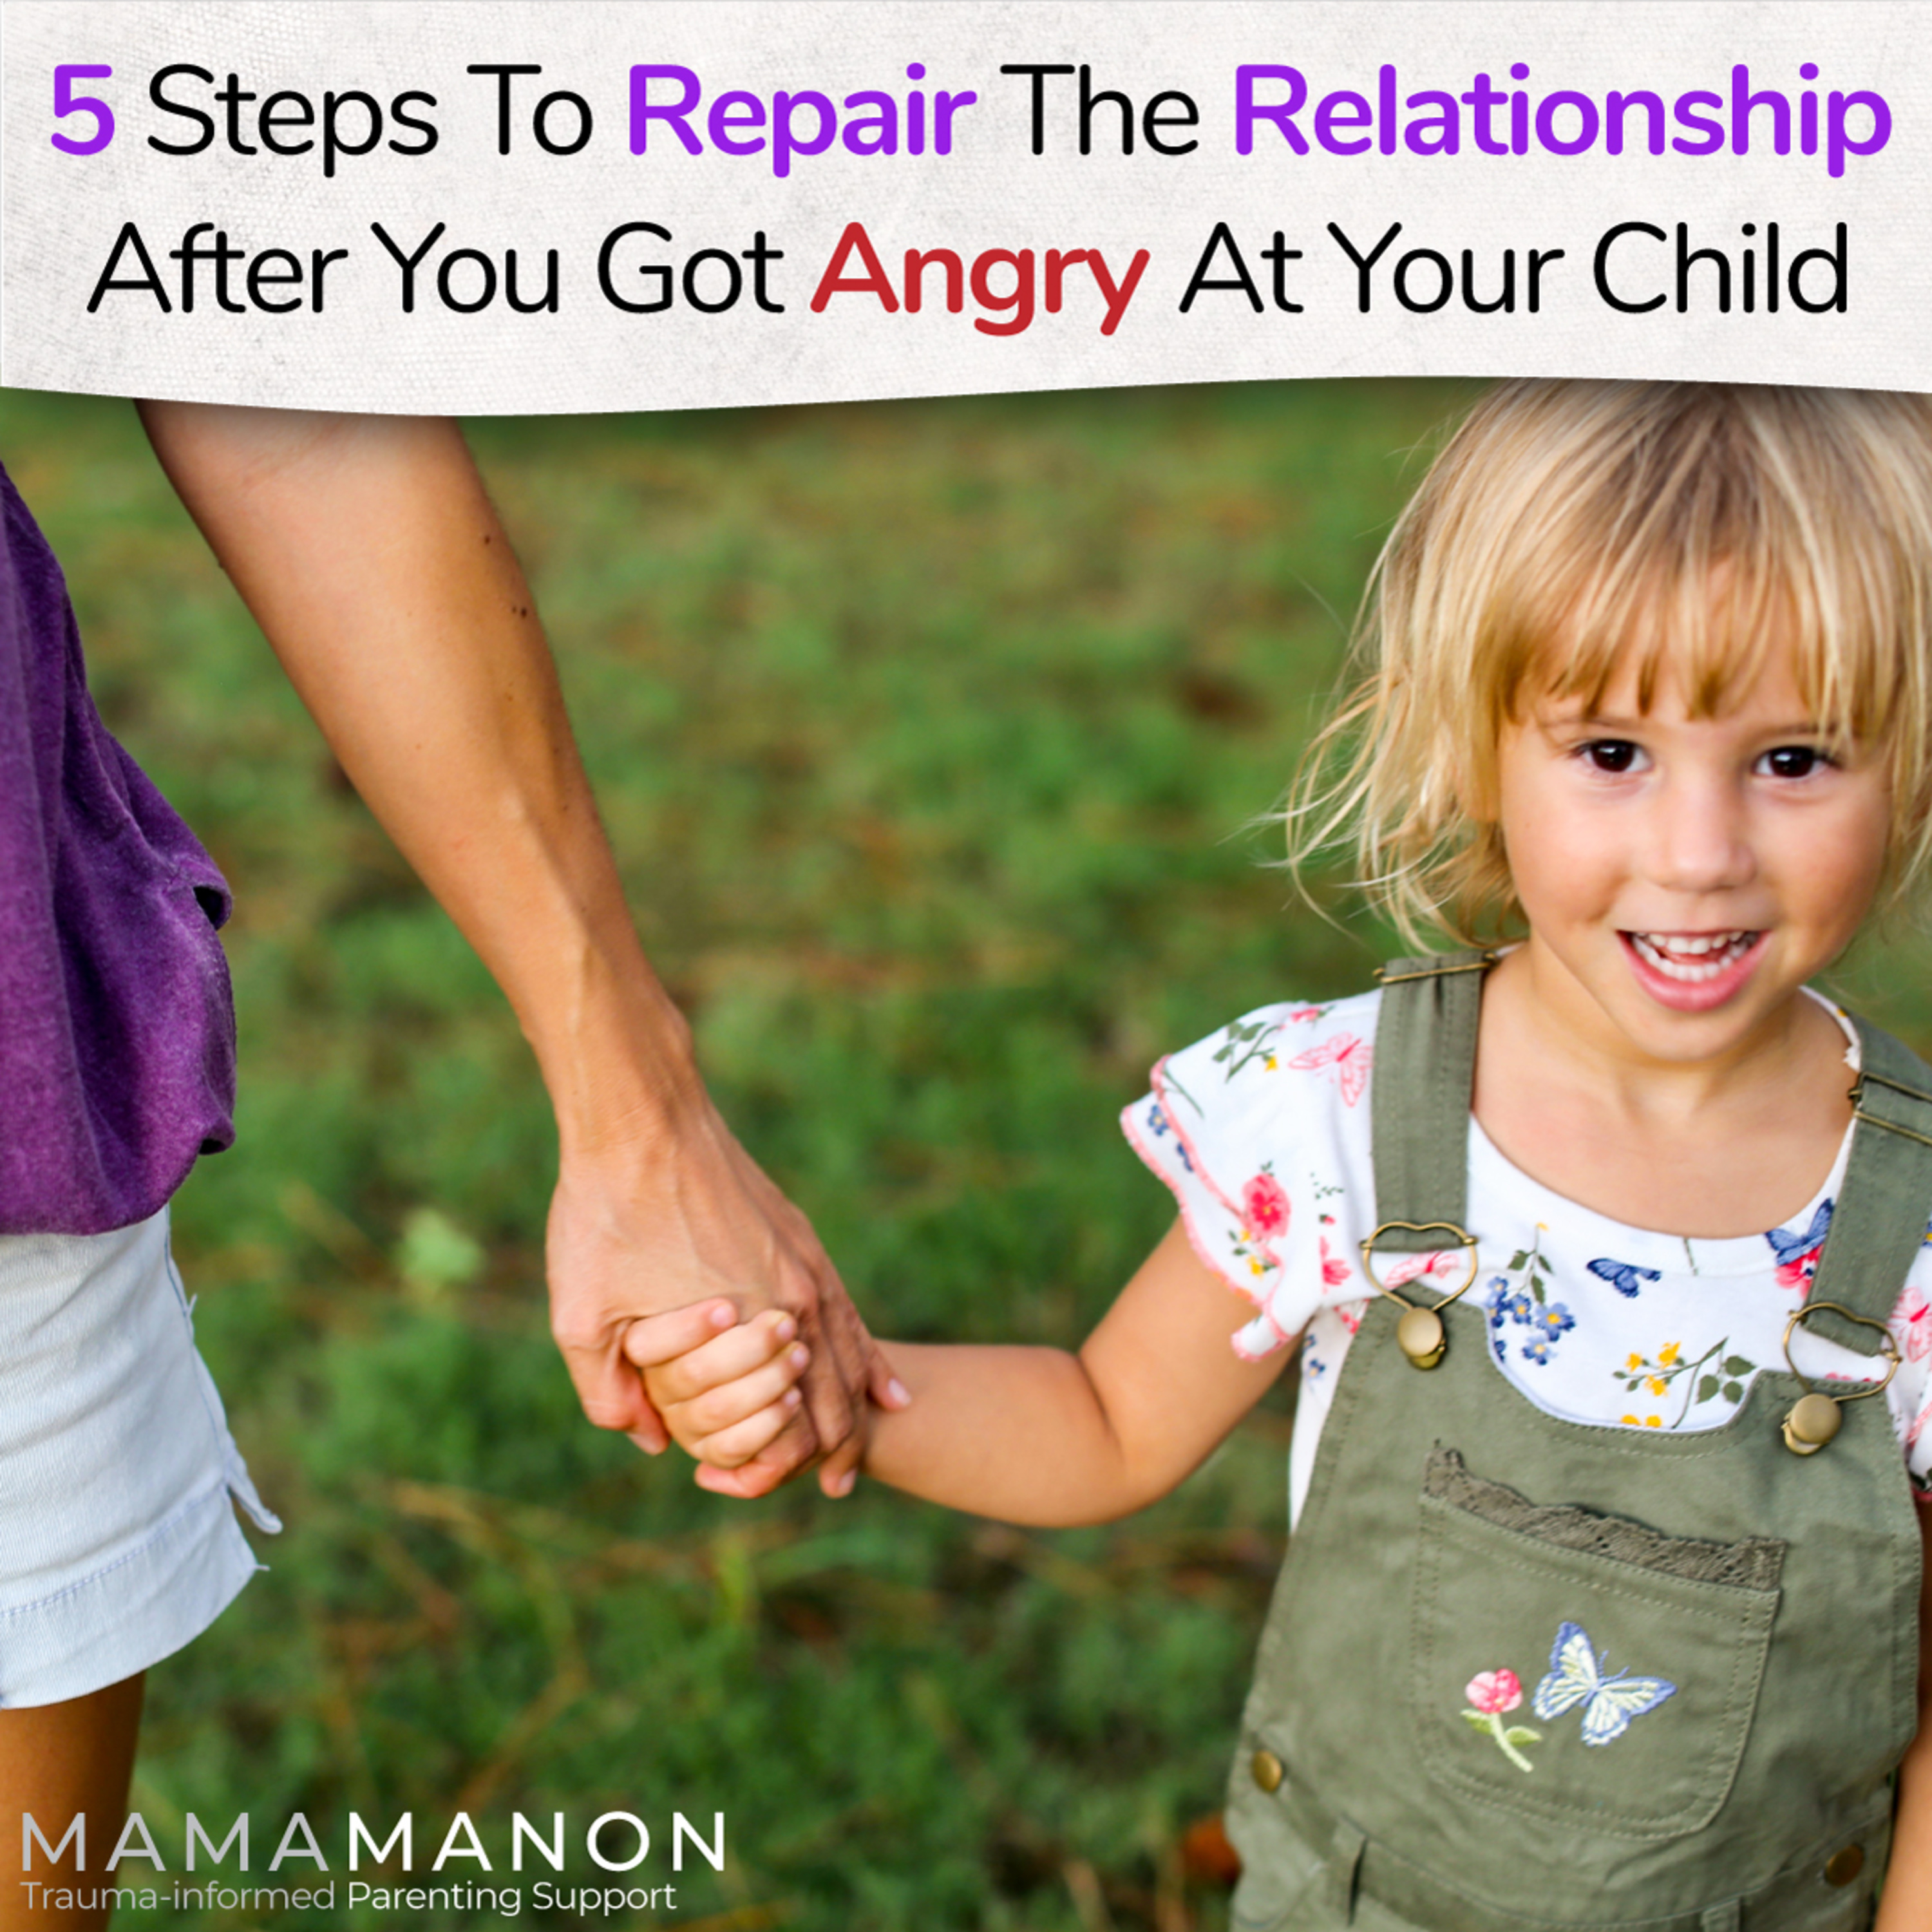 Five steps to REPAIR the RELATIONSHIP after you got ANGRY at your child